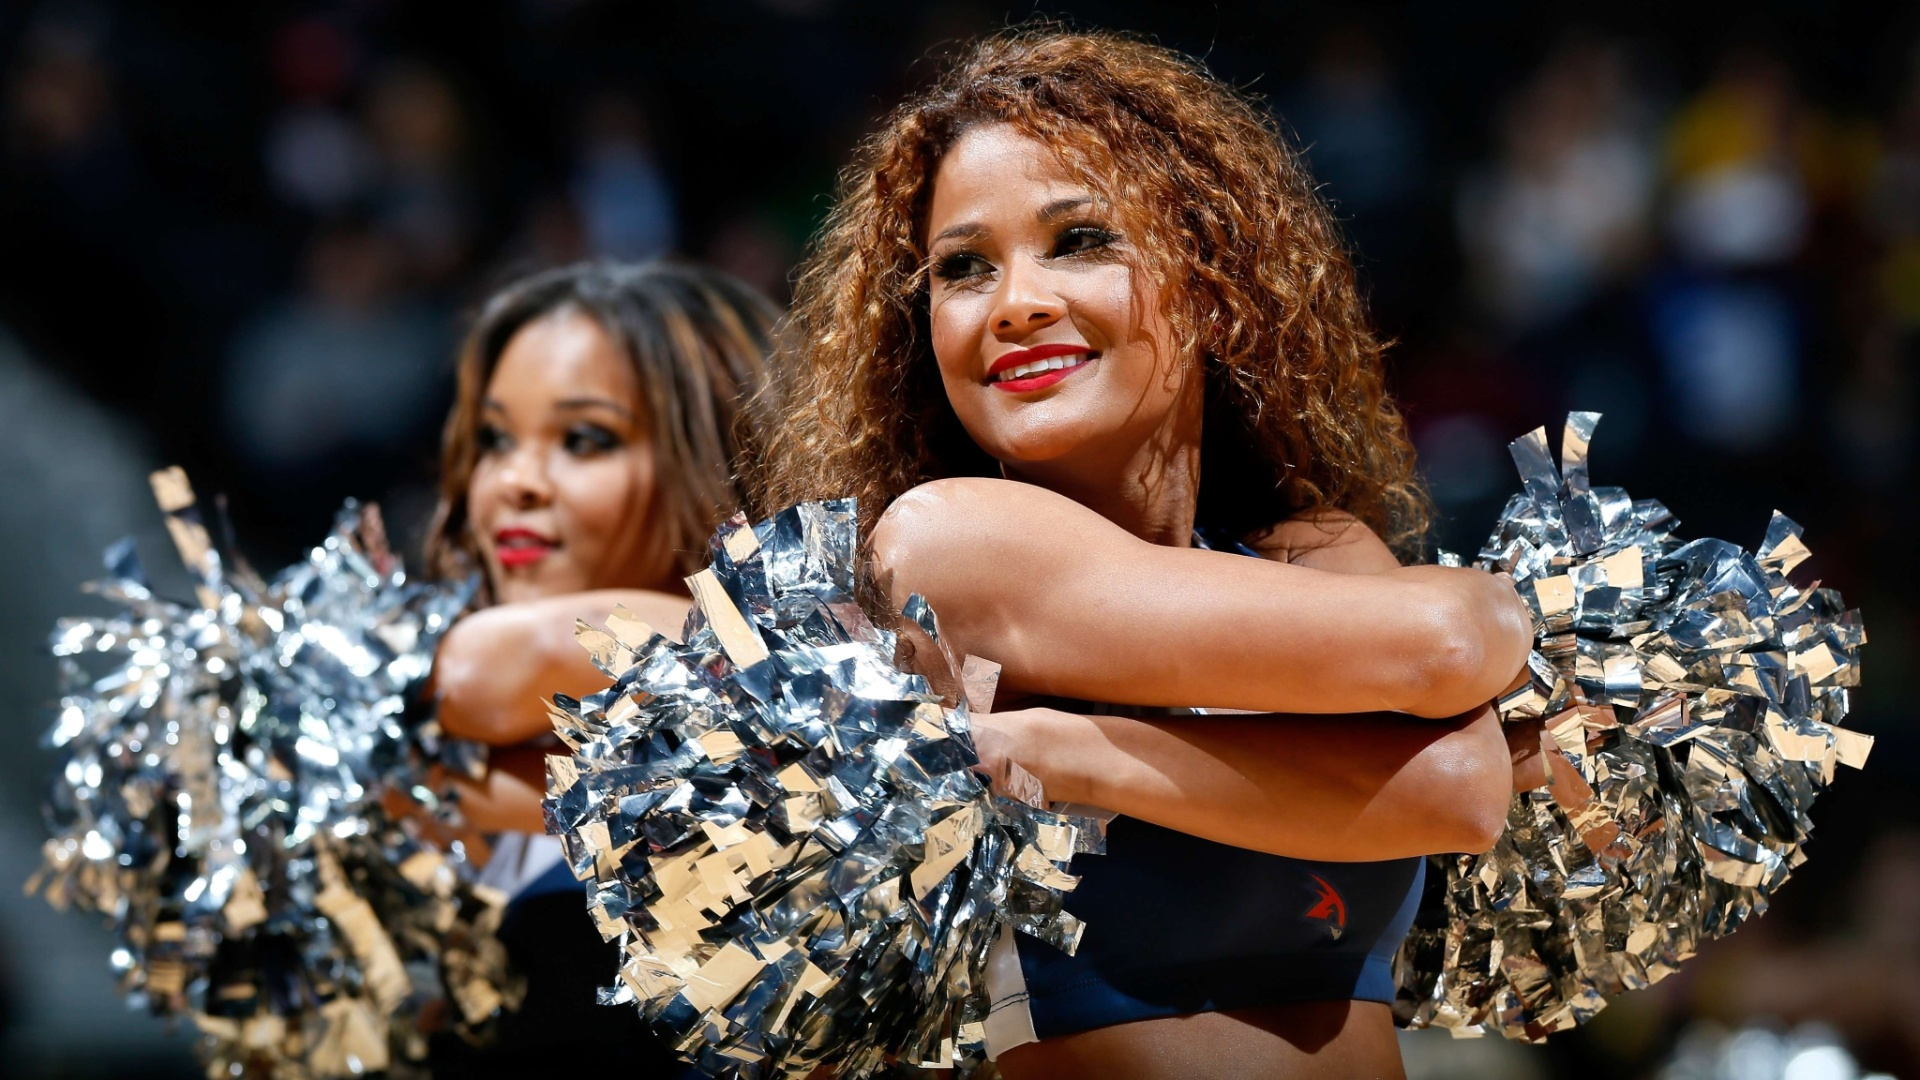 30.jan.2013 - Cheerleader do Atlanta Hawks sorri enquanto dana na partida da equipe da NBA